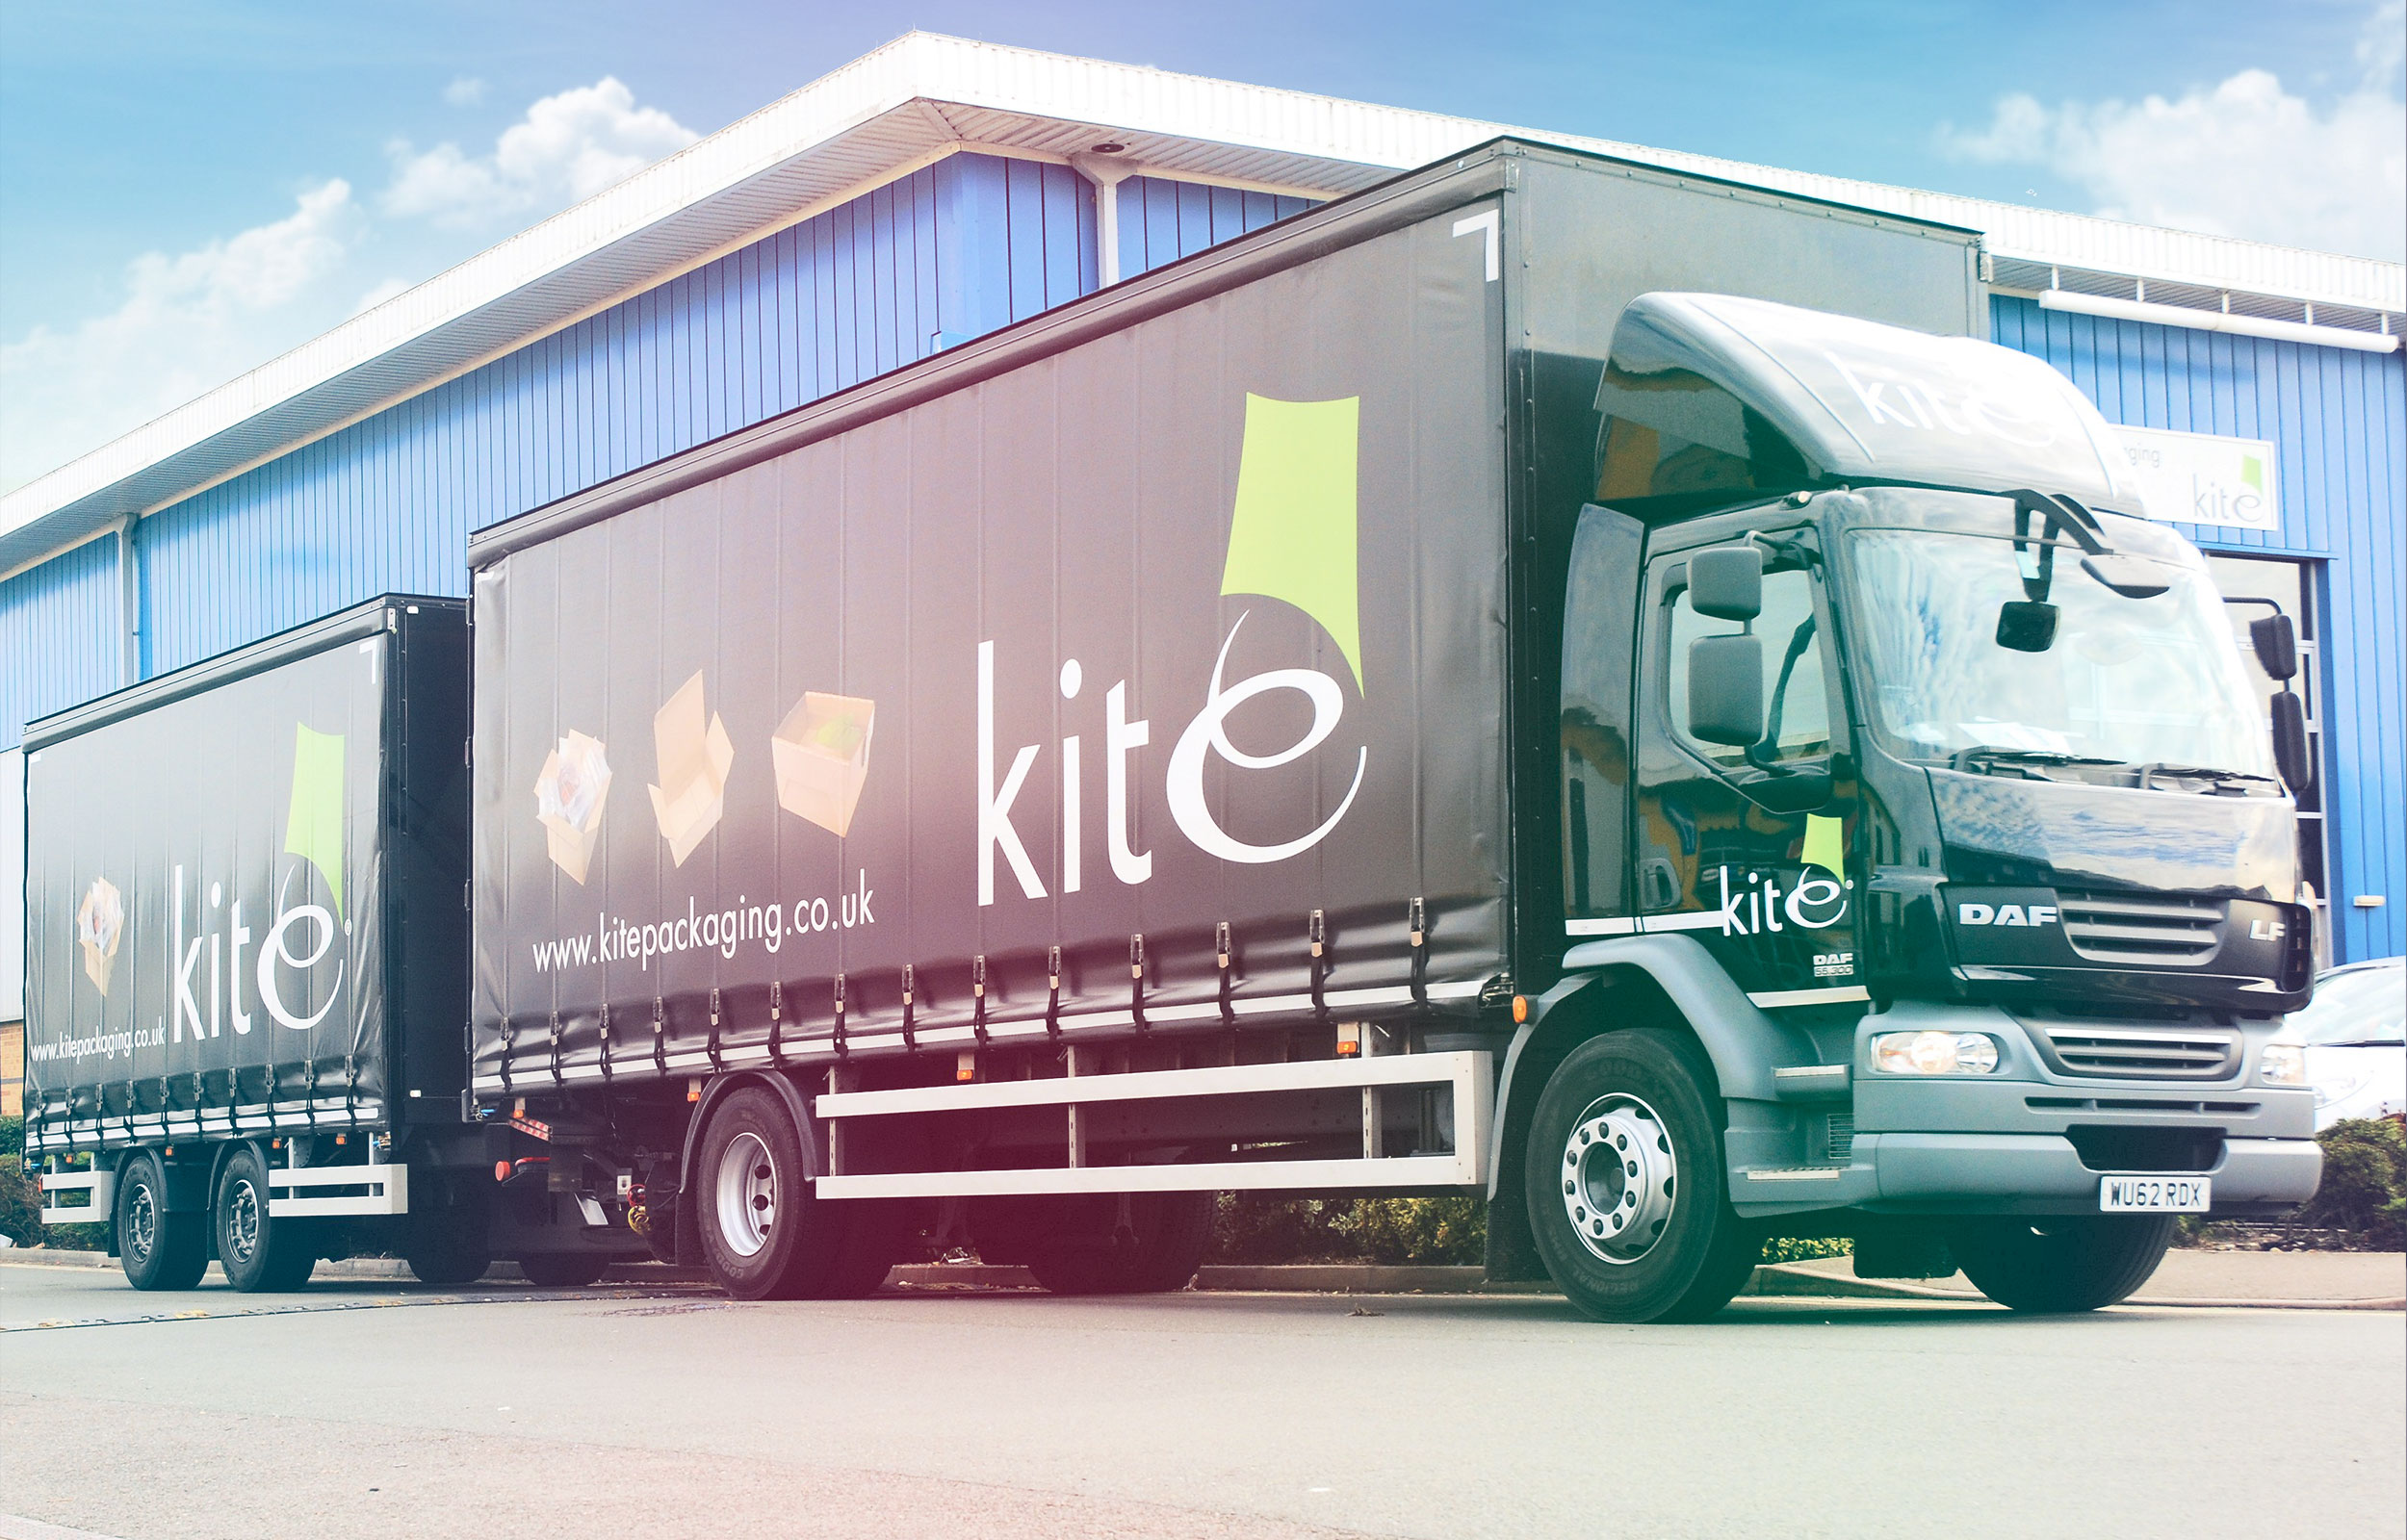 LIMA + Kite Packaging = Agility and resiliency